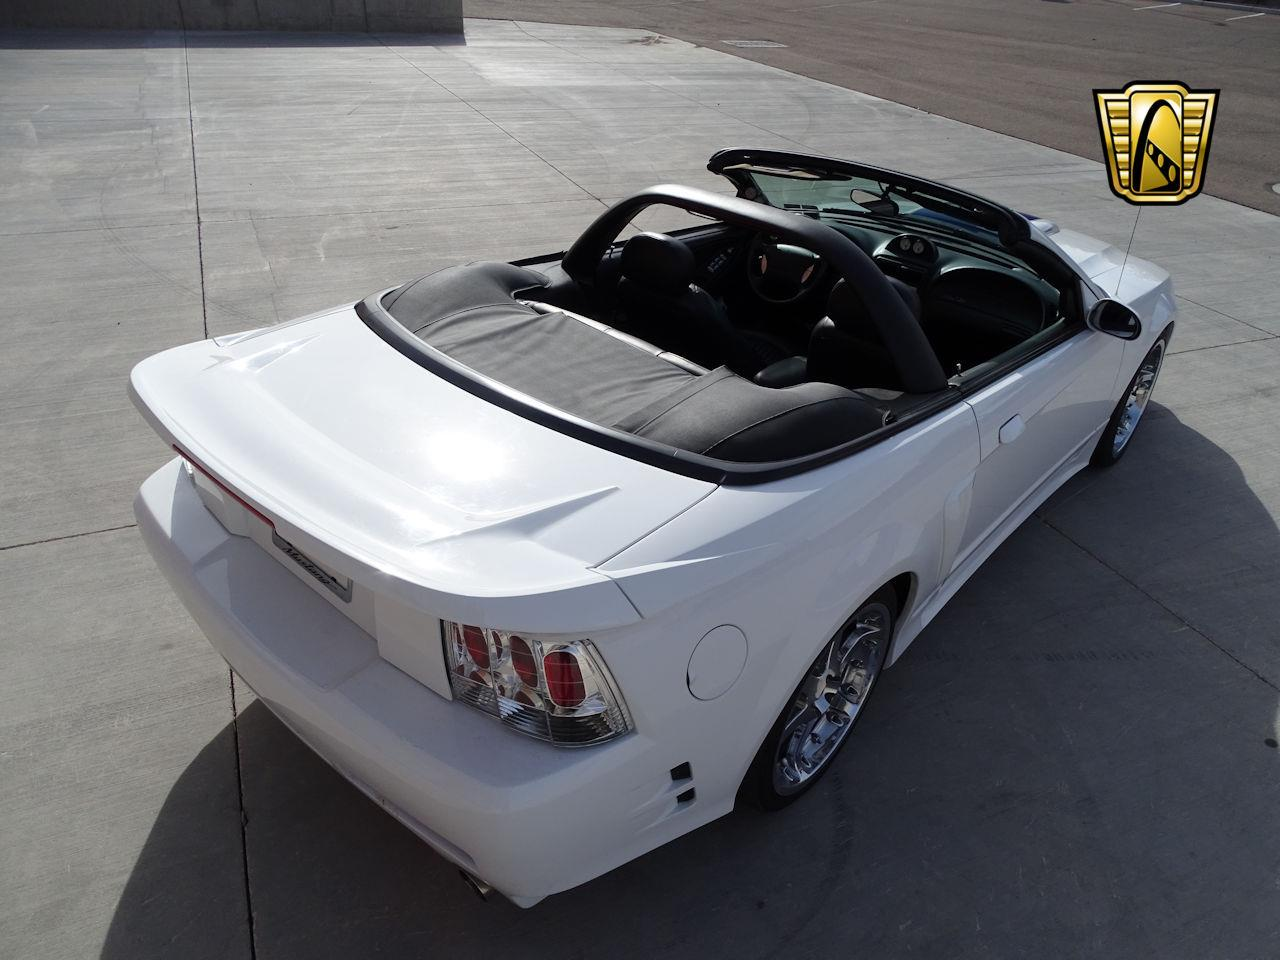 Large Picture of 2002 Ford Mustang - $31,995.00 Offered by Gateway Classic Cars - Scottsdale - MZG0